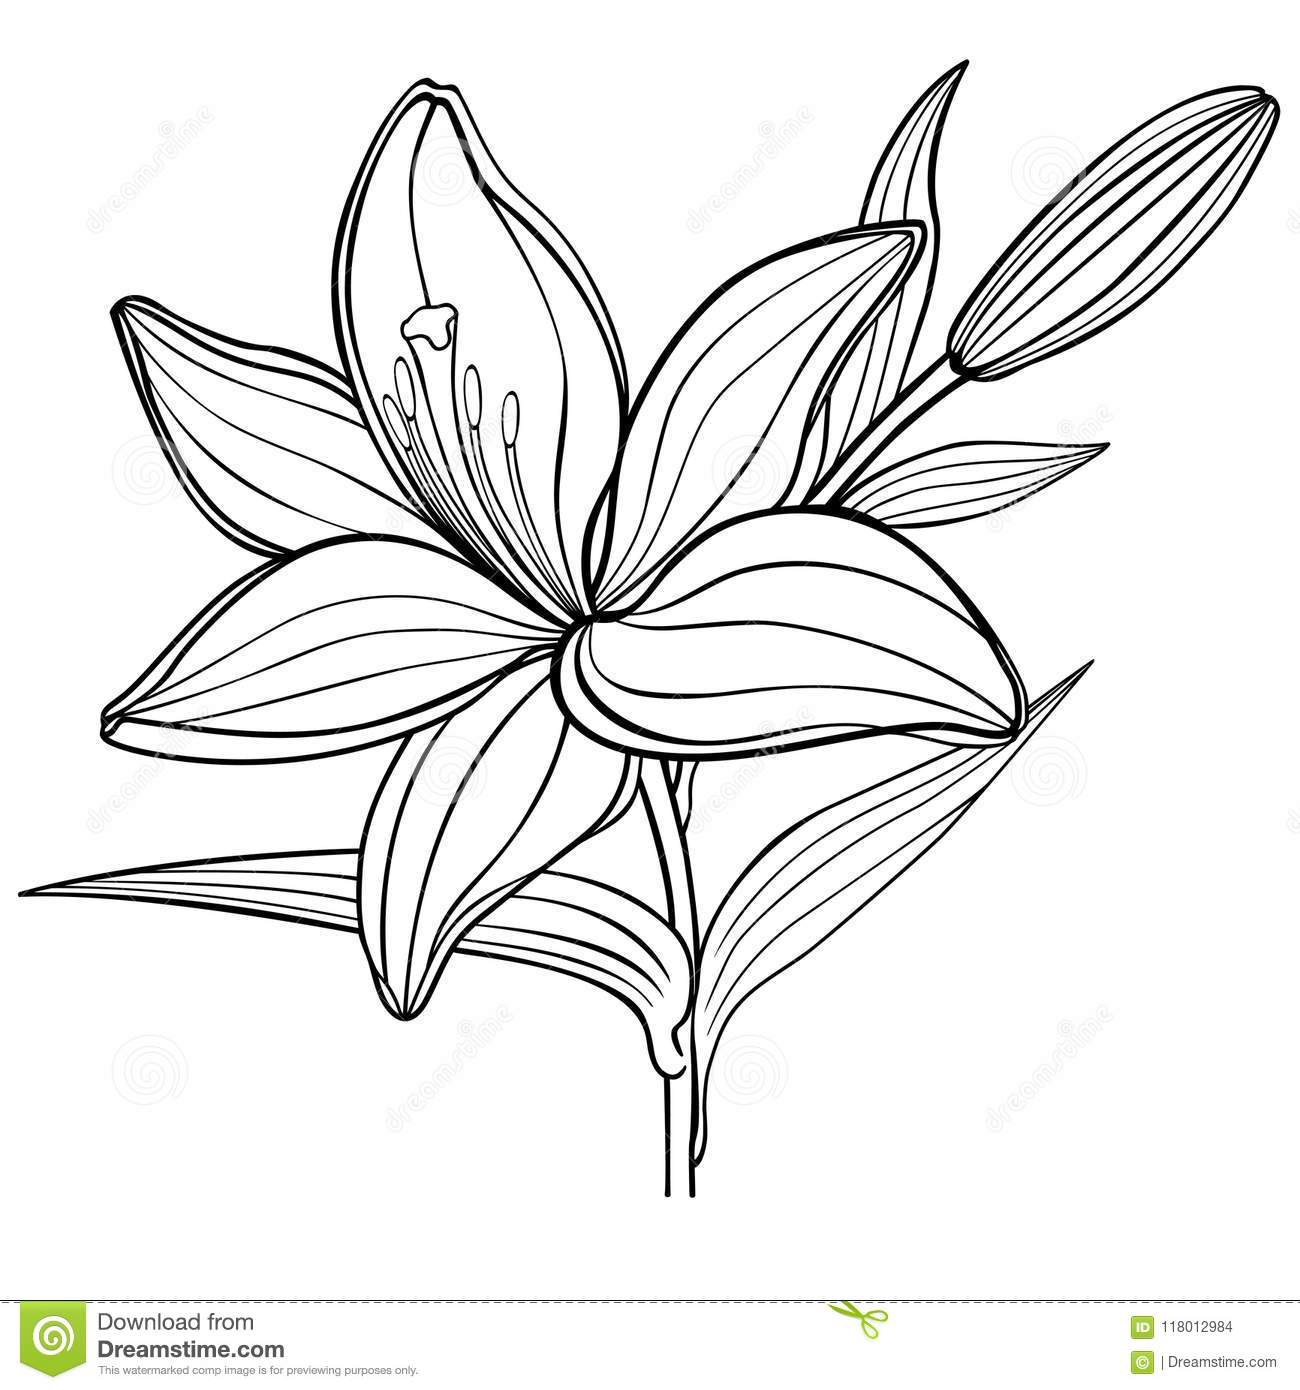 A lily flower with a bud black and white linear drawing coloring download a lily flower with a bud black and white linear drawing coloring izmirmasajfo